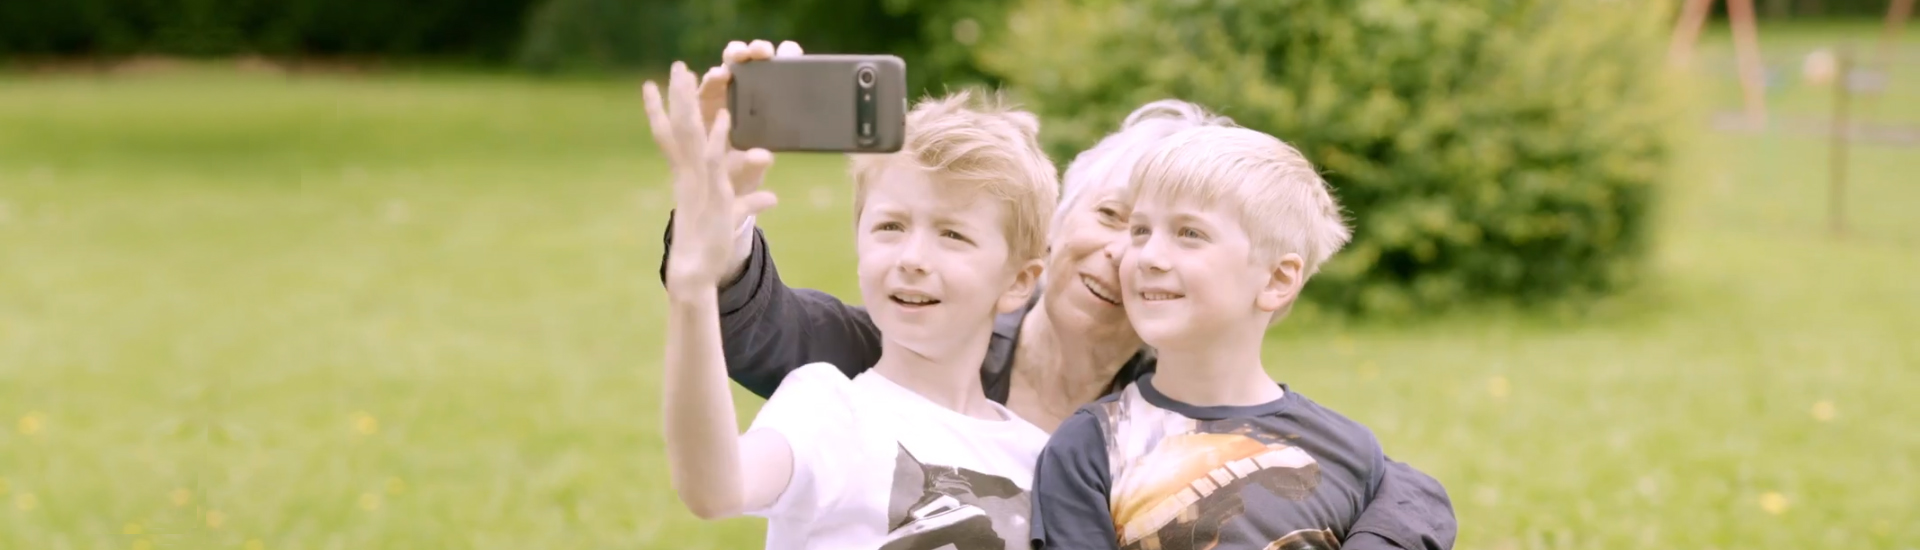 Woman snapping selfie with her grandchildren.